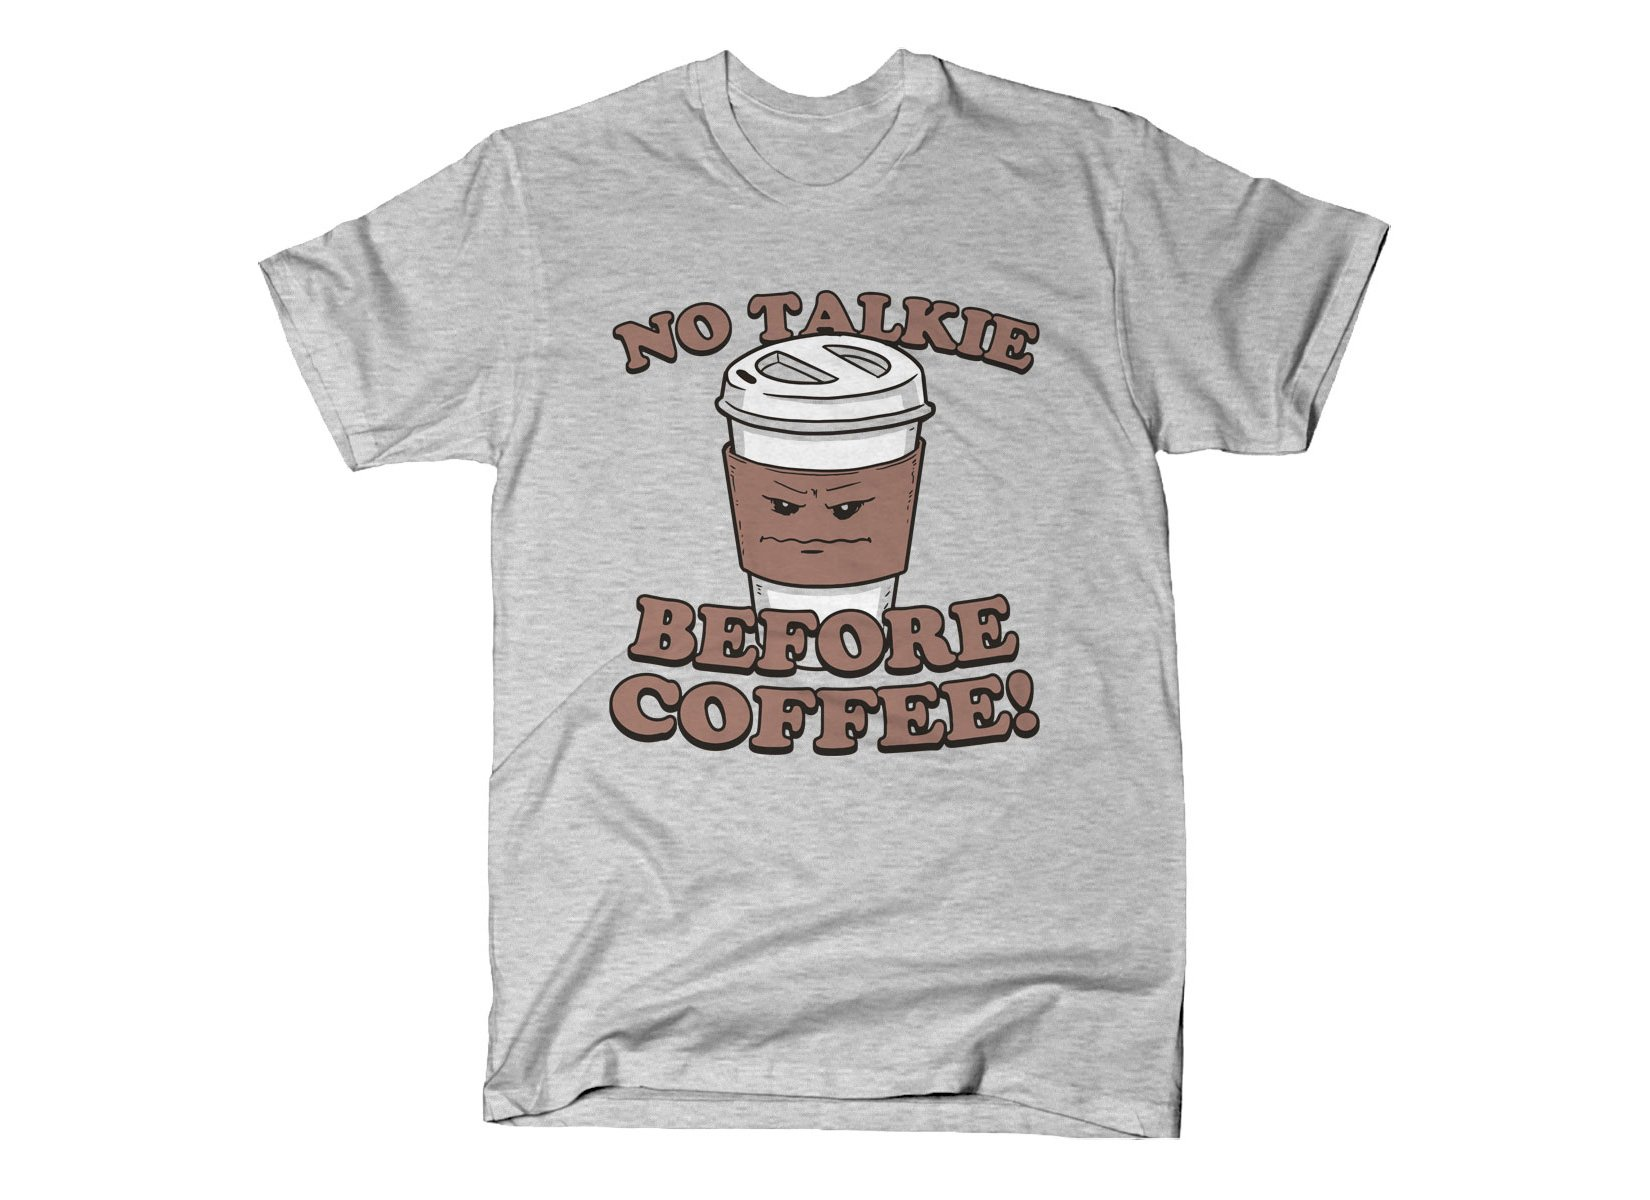 No Talkie Before Coffee! on Mens T-Shirt